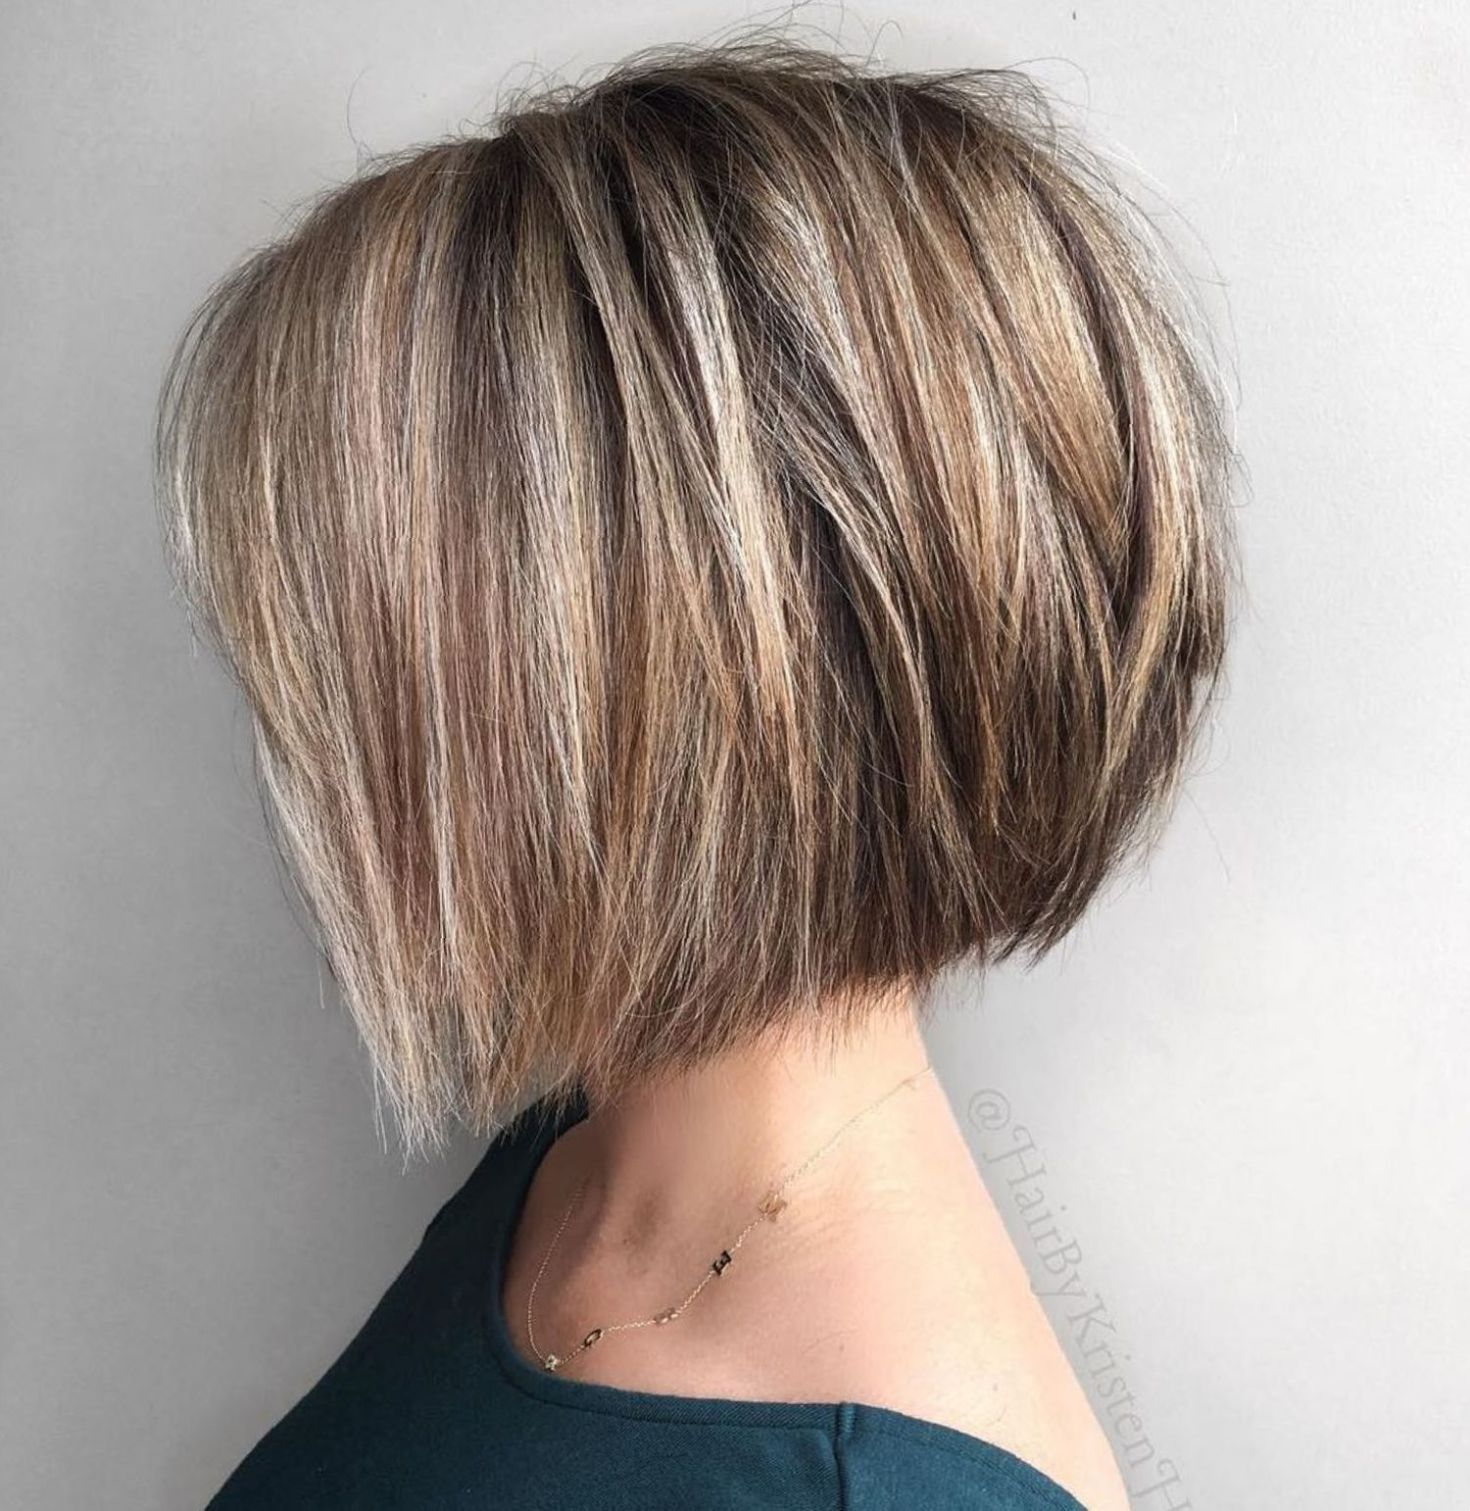 Angled Choppy Bob For Straight Thick Hair Short Hairstyles For Thick Hair Bob Hairstyles For Thick Straight Thick Hair